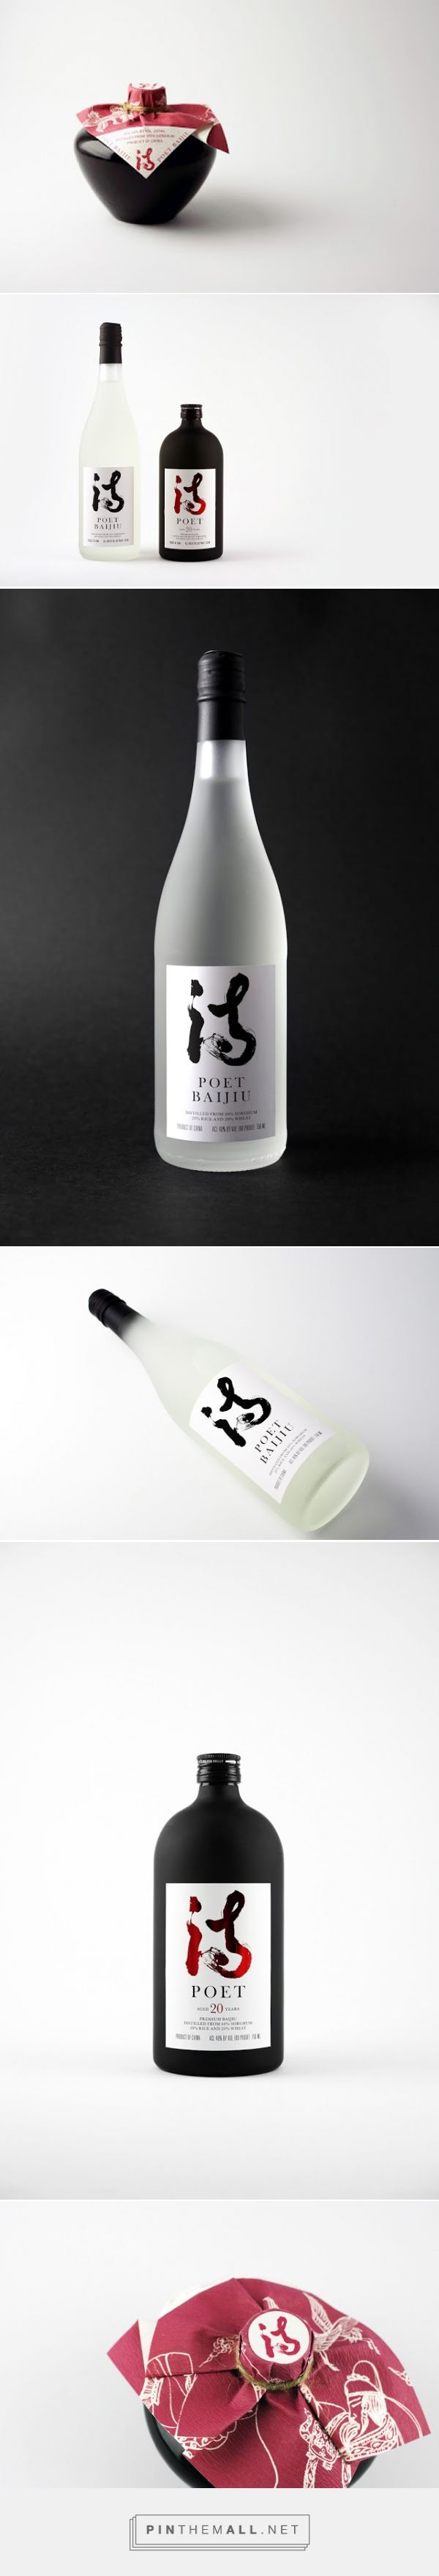 Poet Baijiu Liquor packaging (Student Project) via Packaging of the World curated by Packaging Diva PD. Great design work.